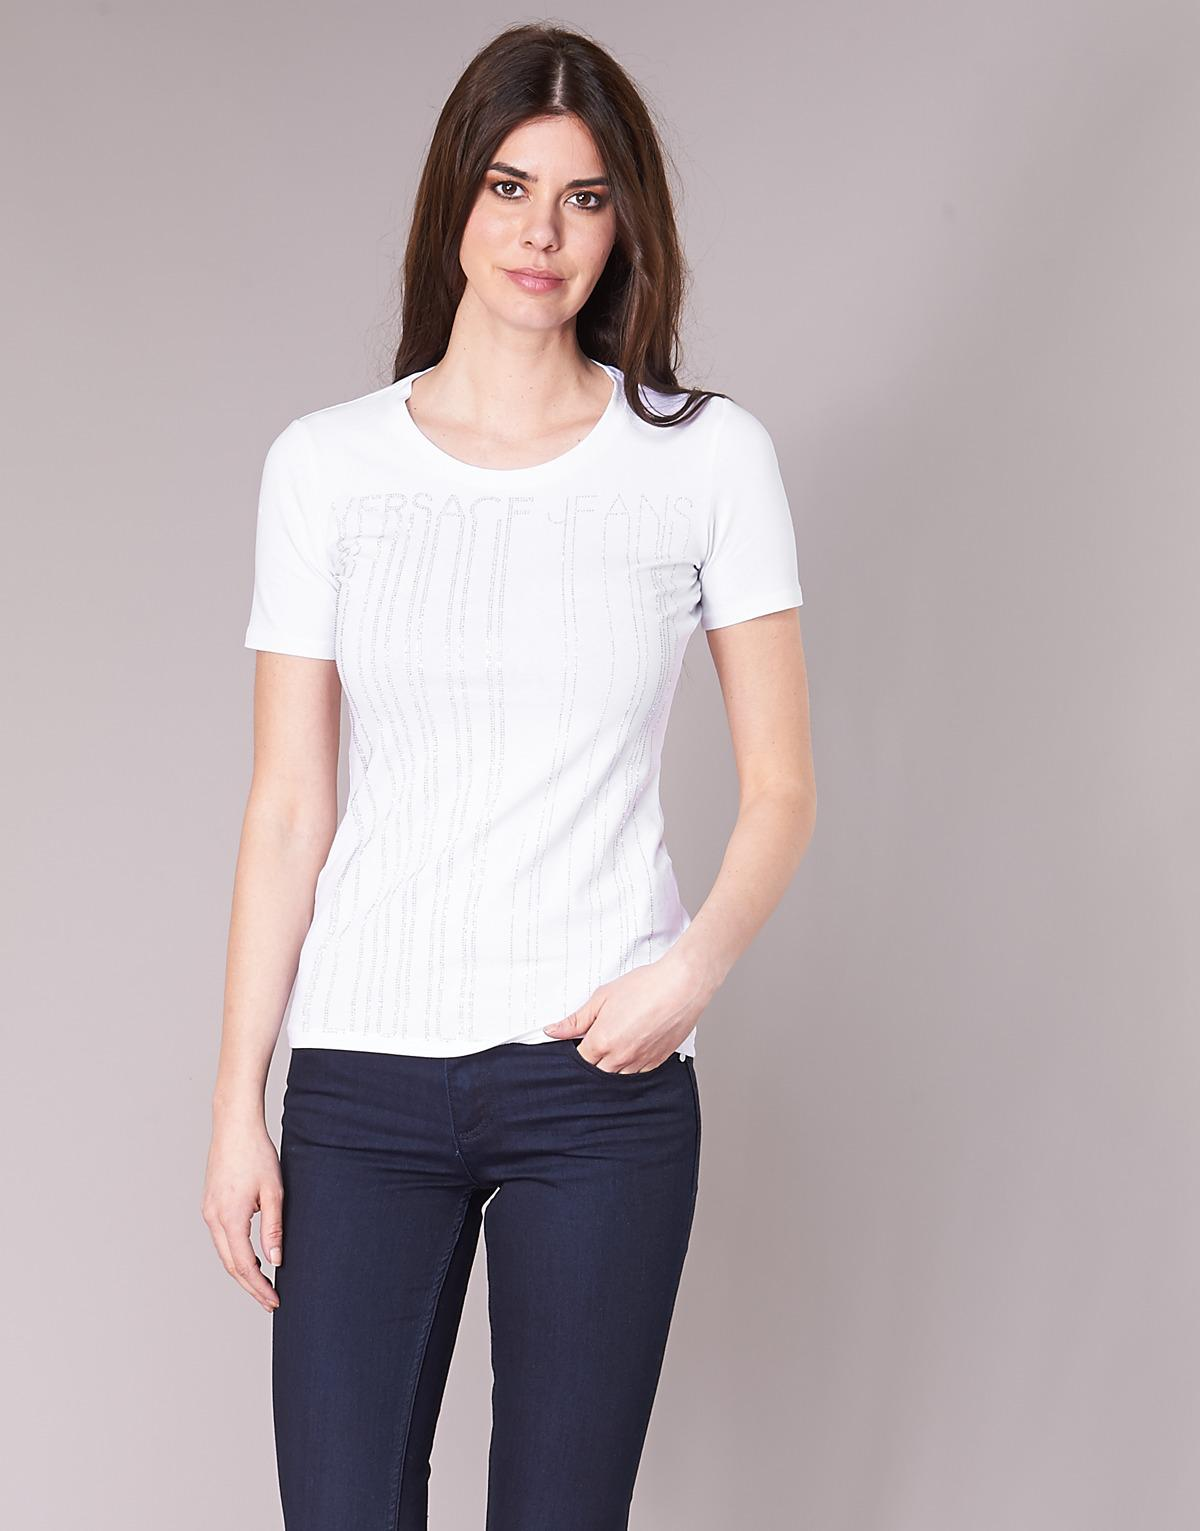 3ffb2ab2feb0 Versace Jeans B2hrb7t0 Women s T Shirt In White in White - Lyst